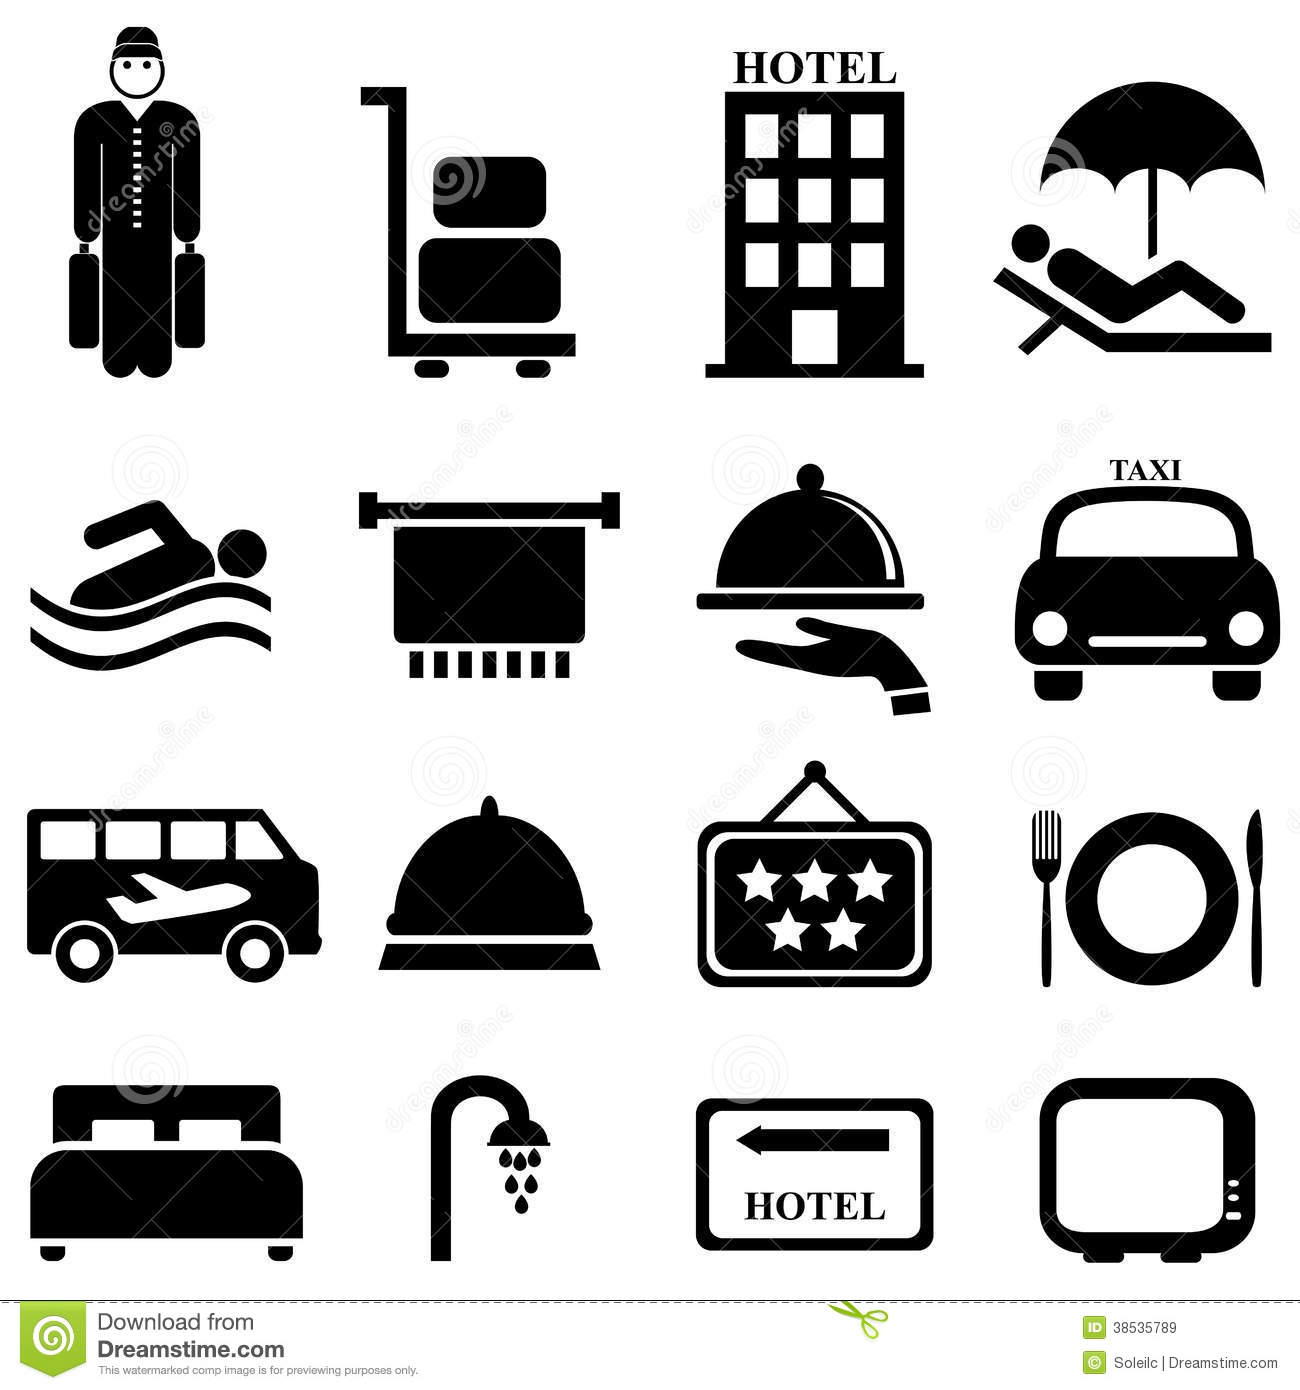 hotel and hospitality industry Information and analysis on indonesia's hotel and hospitality industry covering market trends, plus business and investment opportunities.